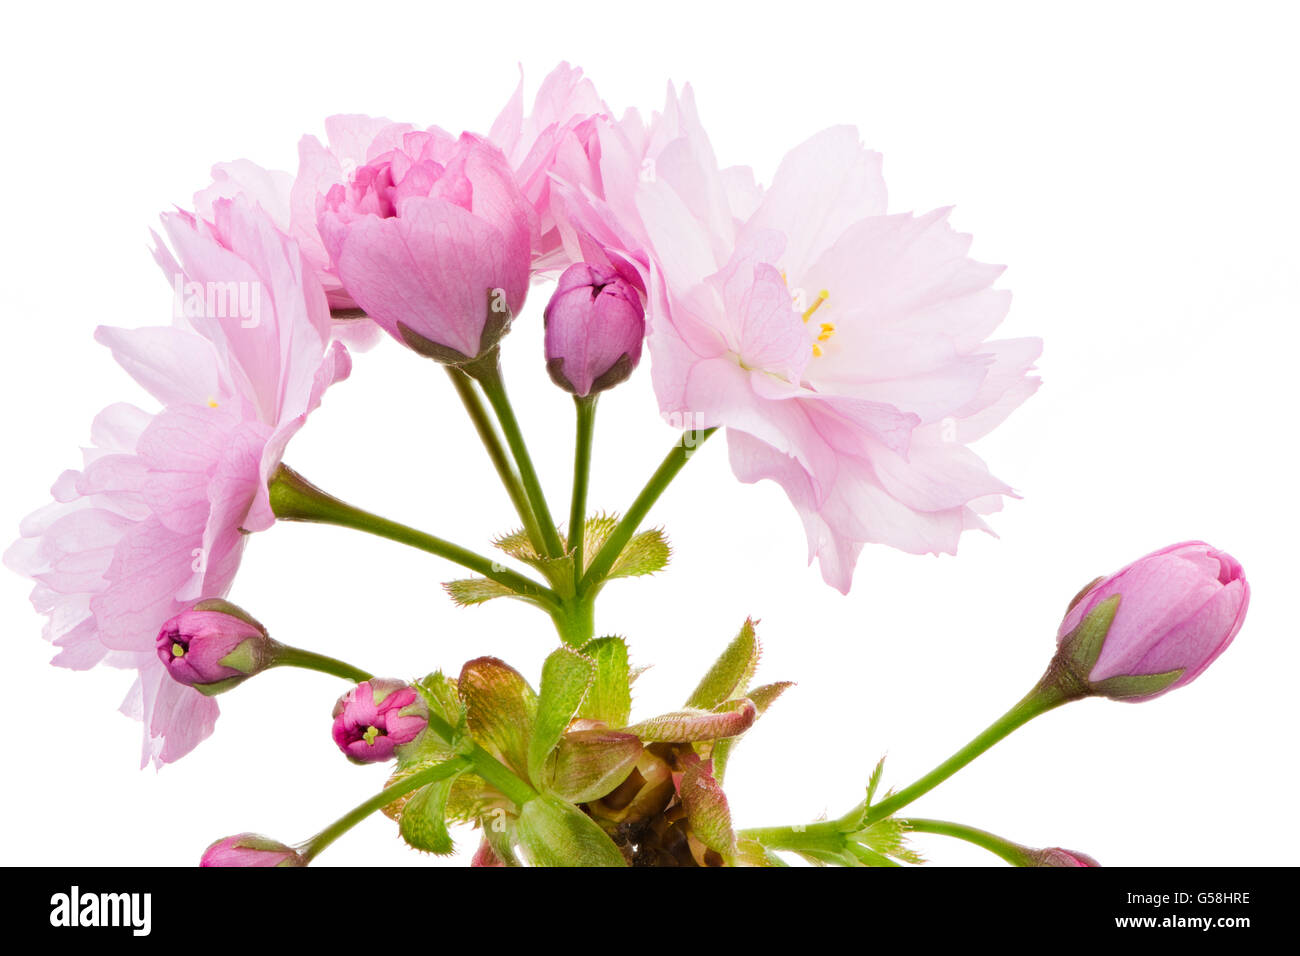 Macro of an isolated twig with pink cherry blossoms - Stock Image